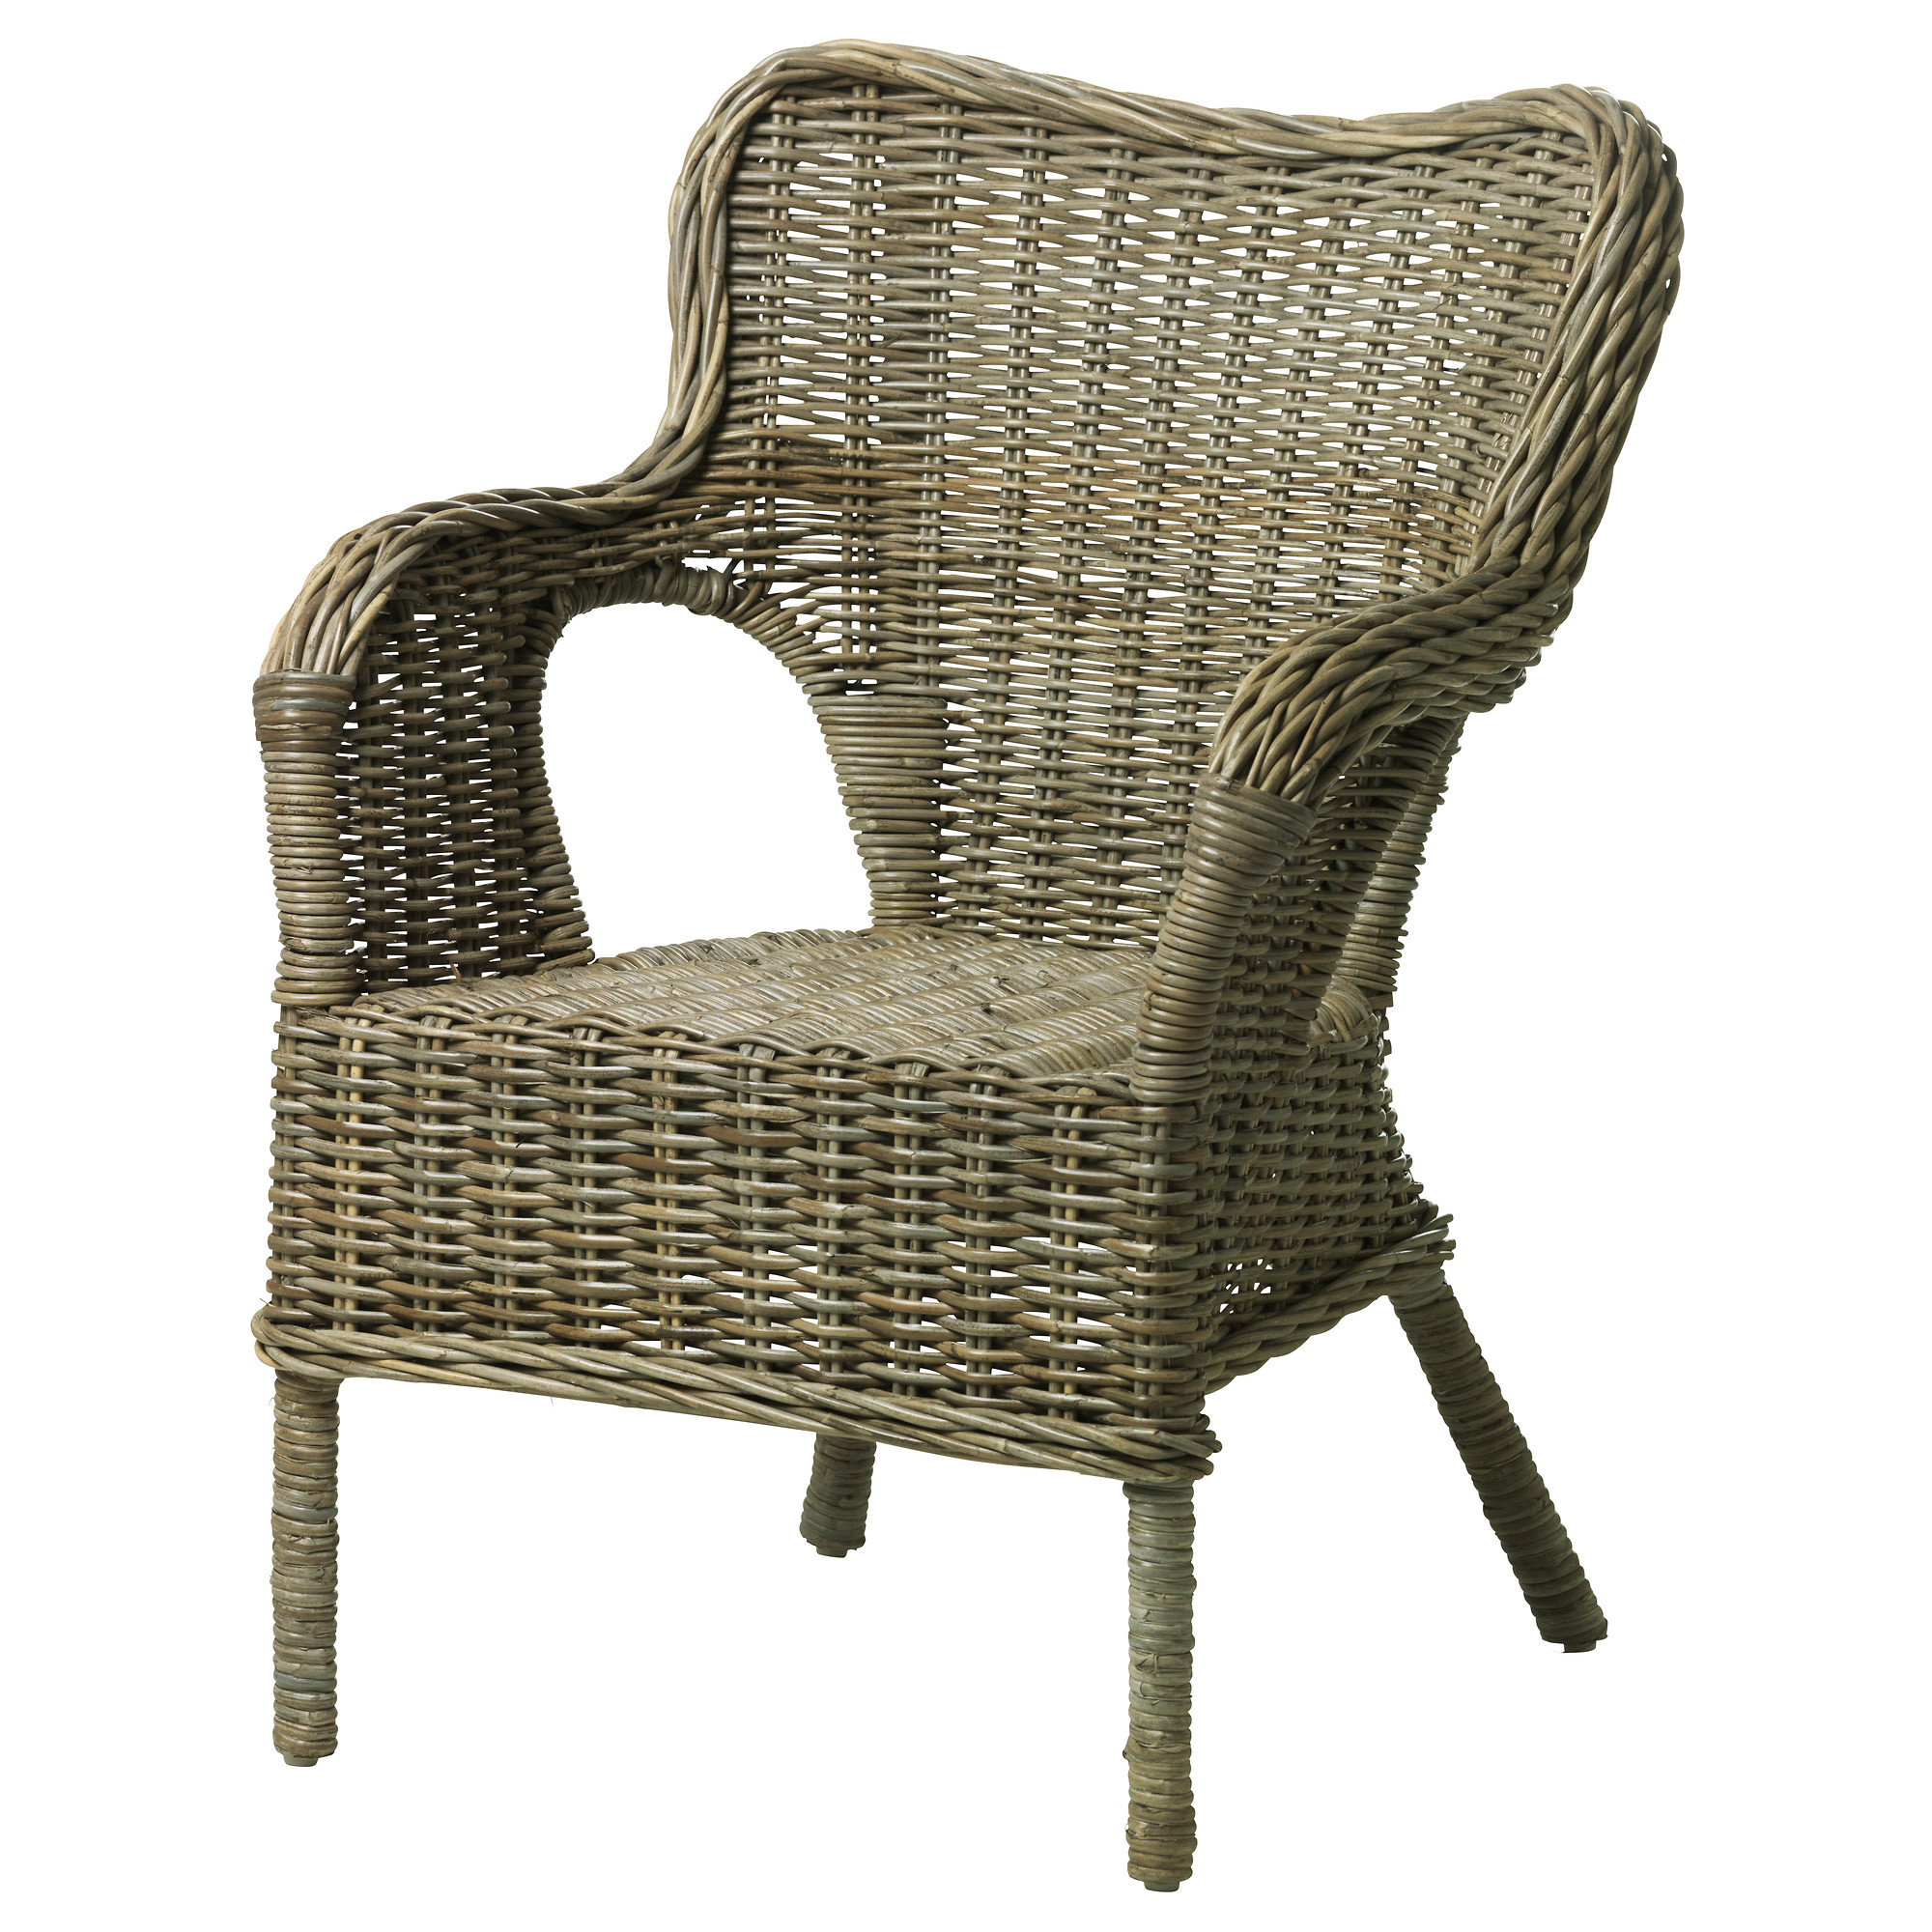 Basket chair ikea - Rattan Folding Chairs Ikea Wicker Chair Rattan Chair